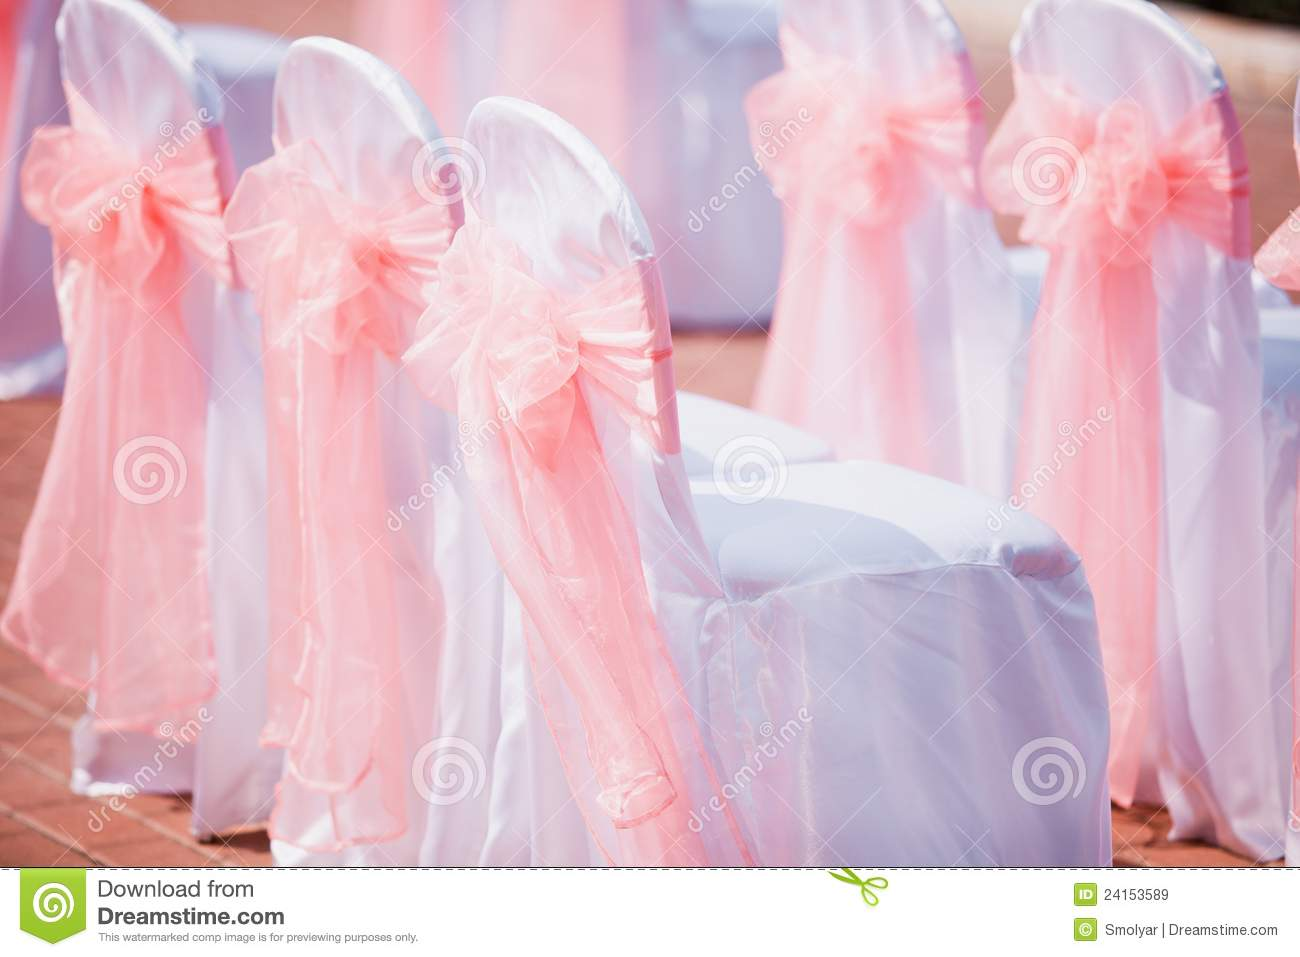 Wedding Chairs Cover With Pink Bows Stock Image - Image of pink ...